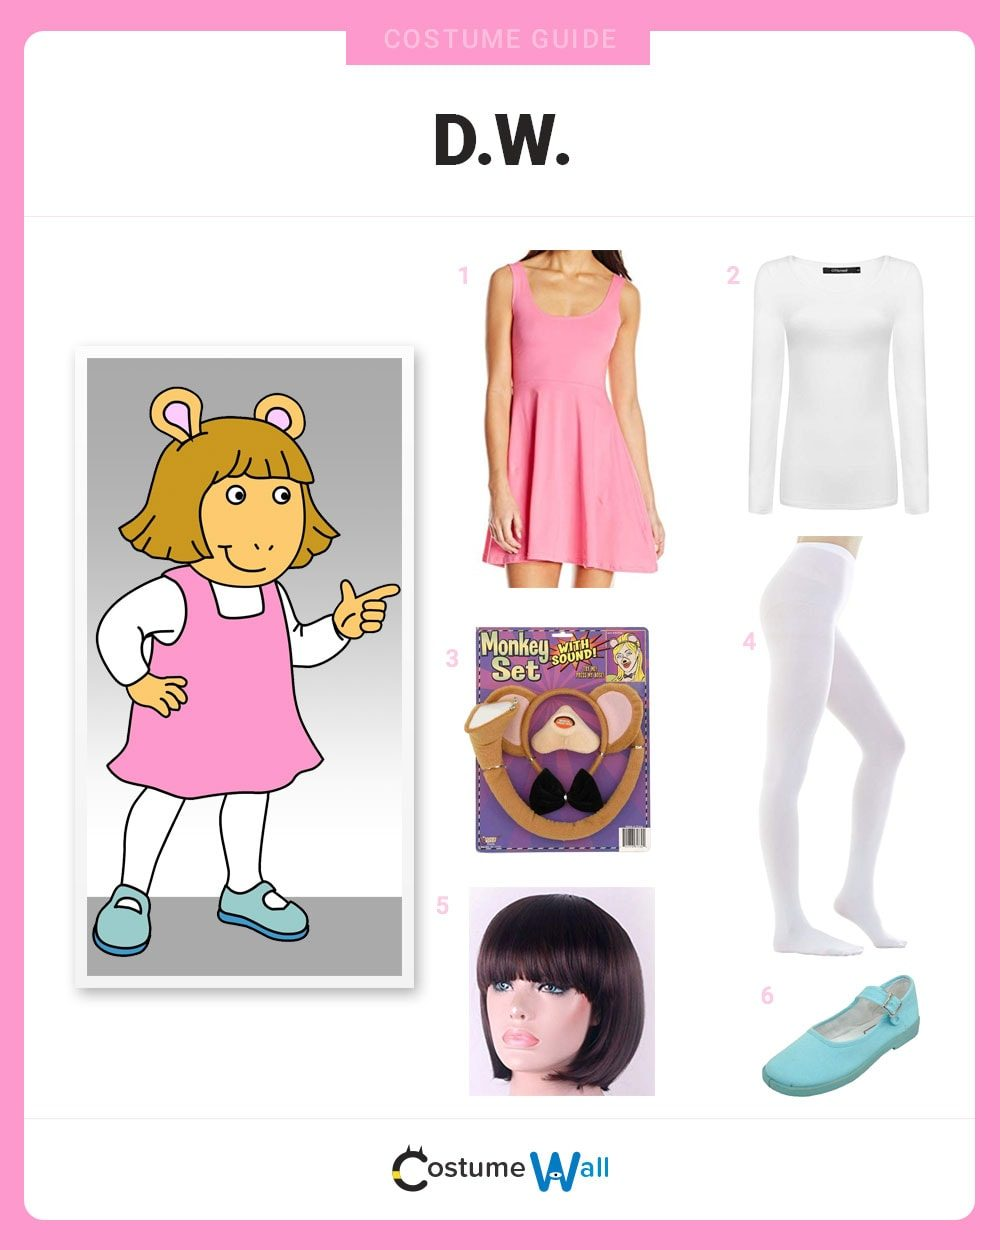 Dress Like D.W. Costume